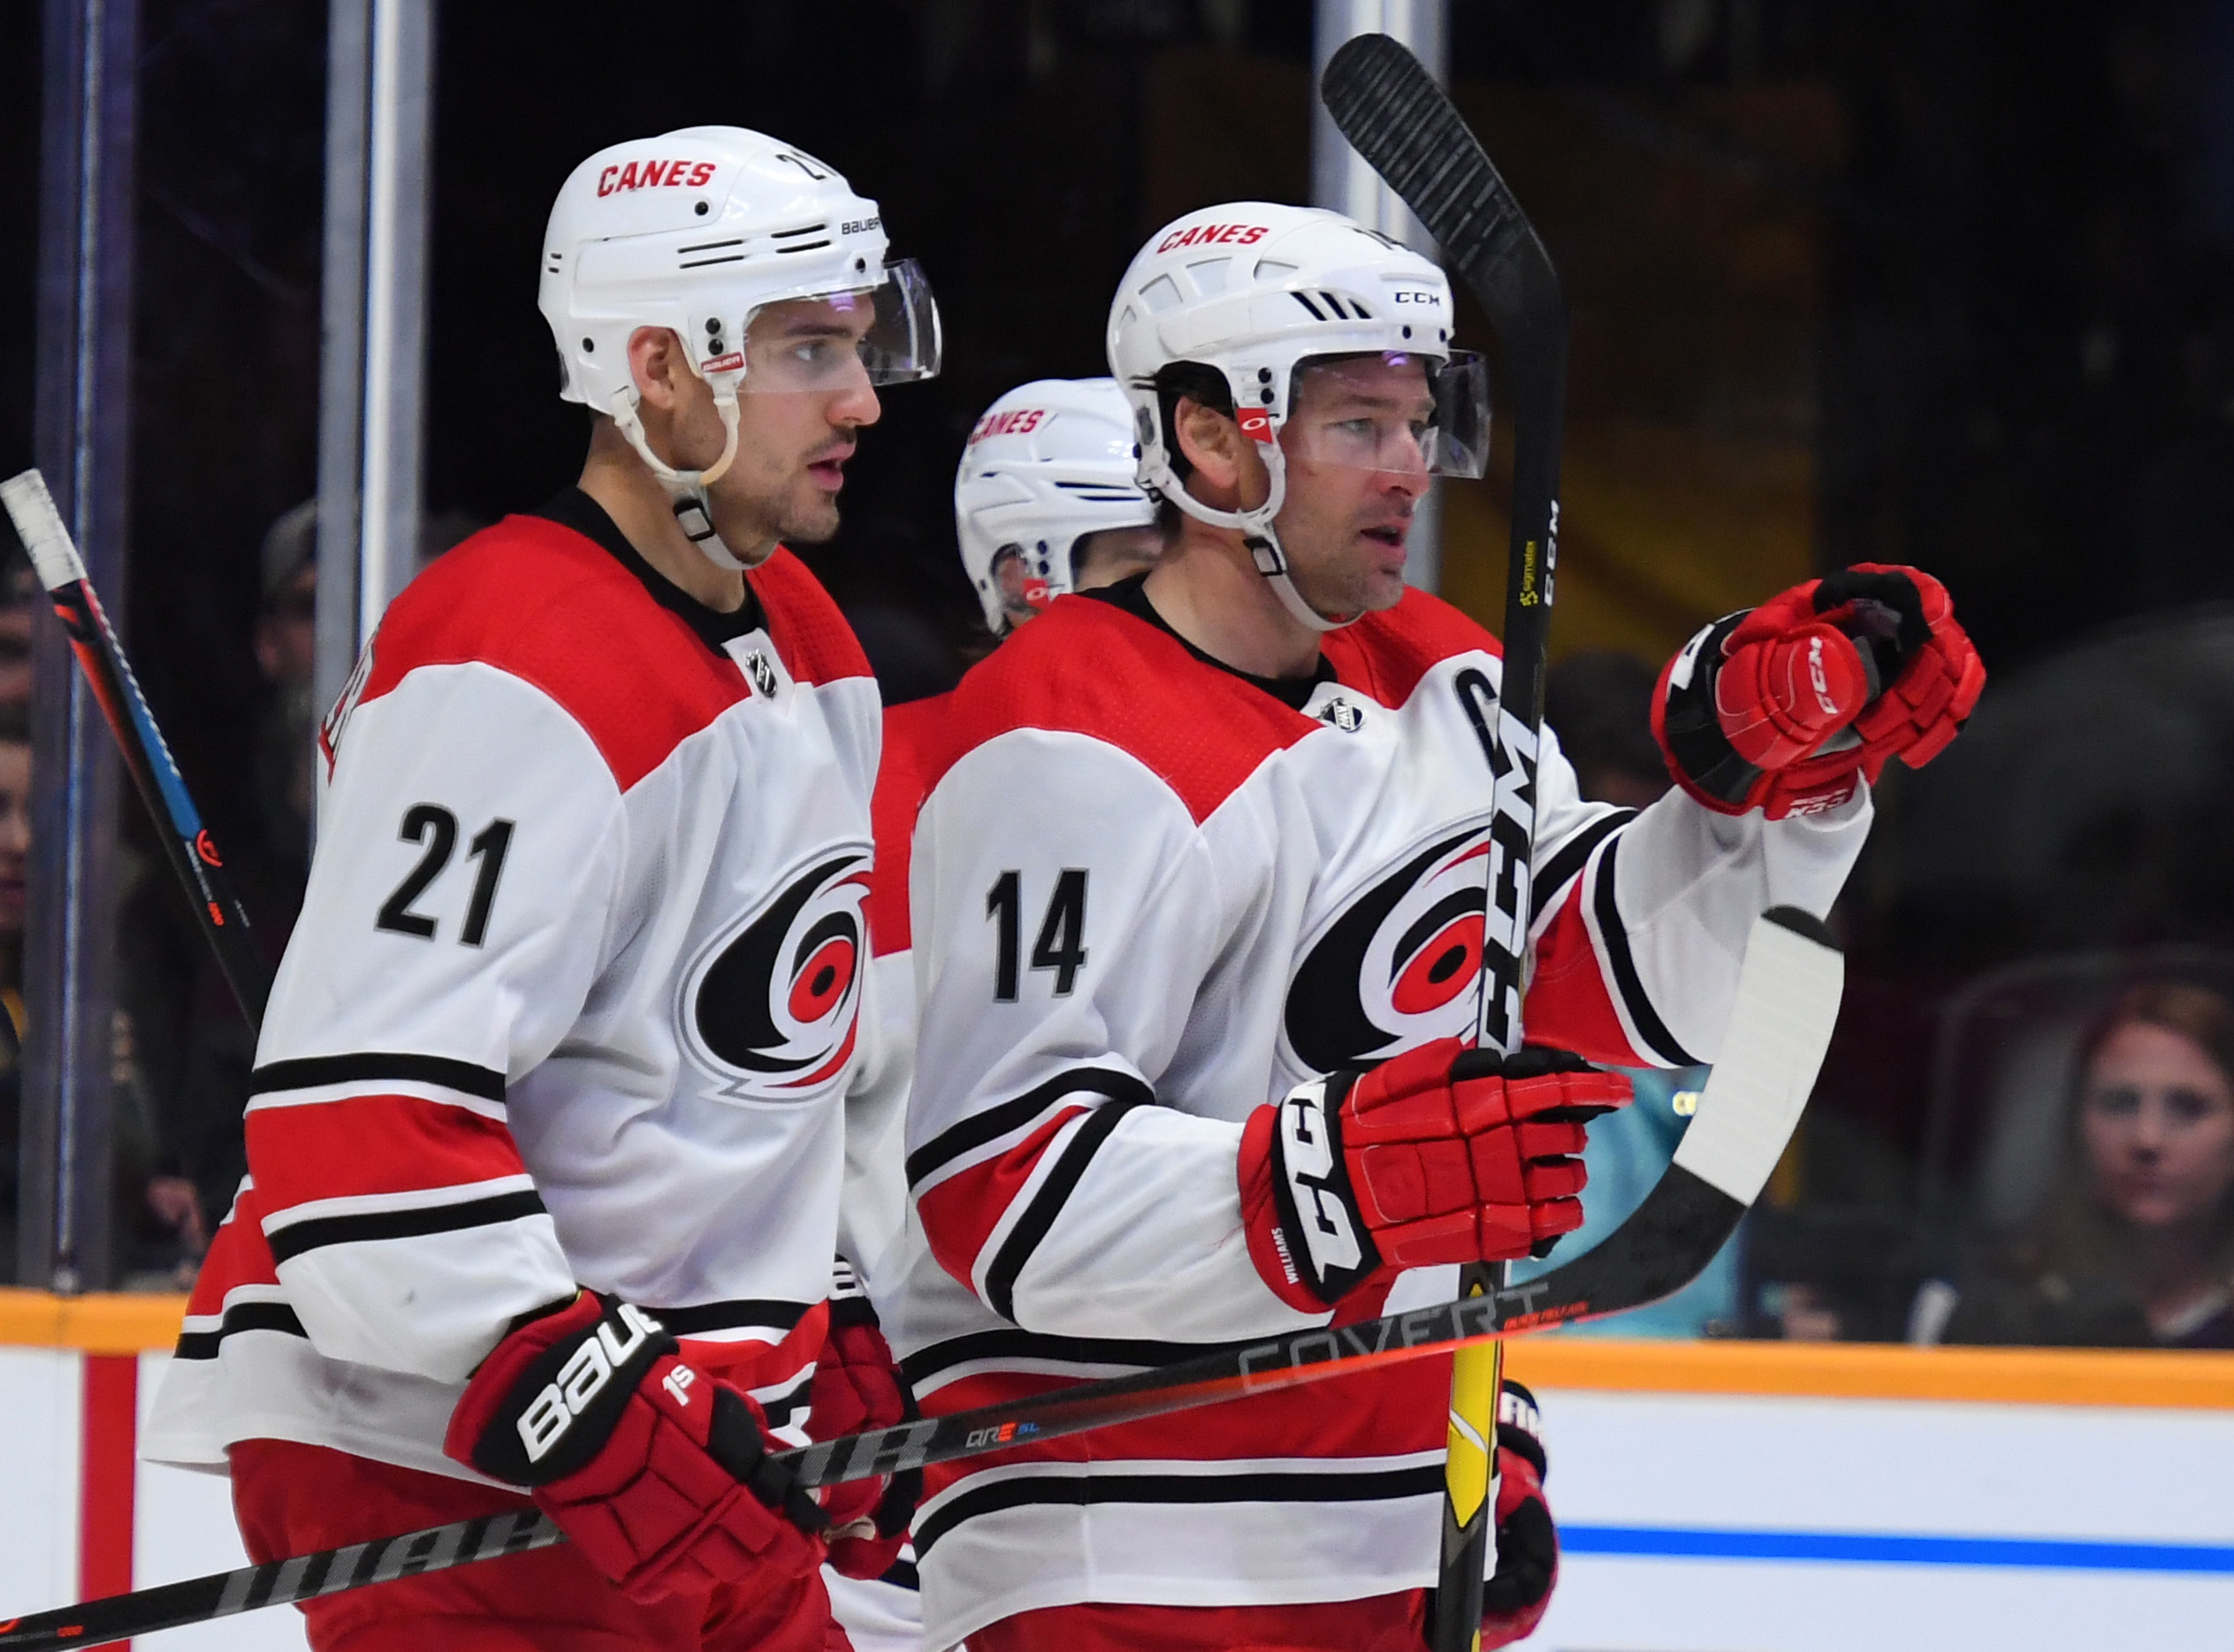 Game Preview: Minnesota Wild vs. Carolina Hurricanes 3/23/19 @ 6:00PM CST at PNC Arena